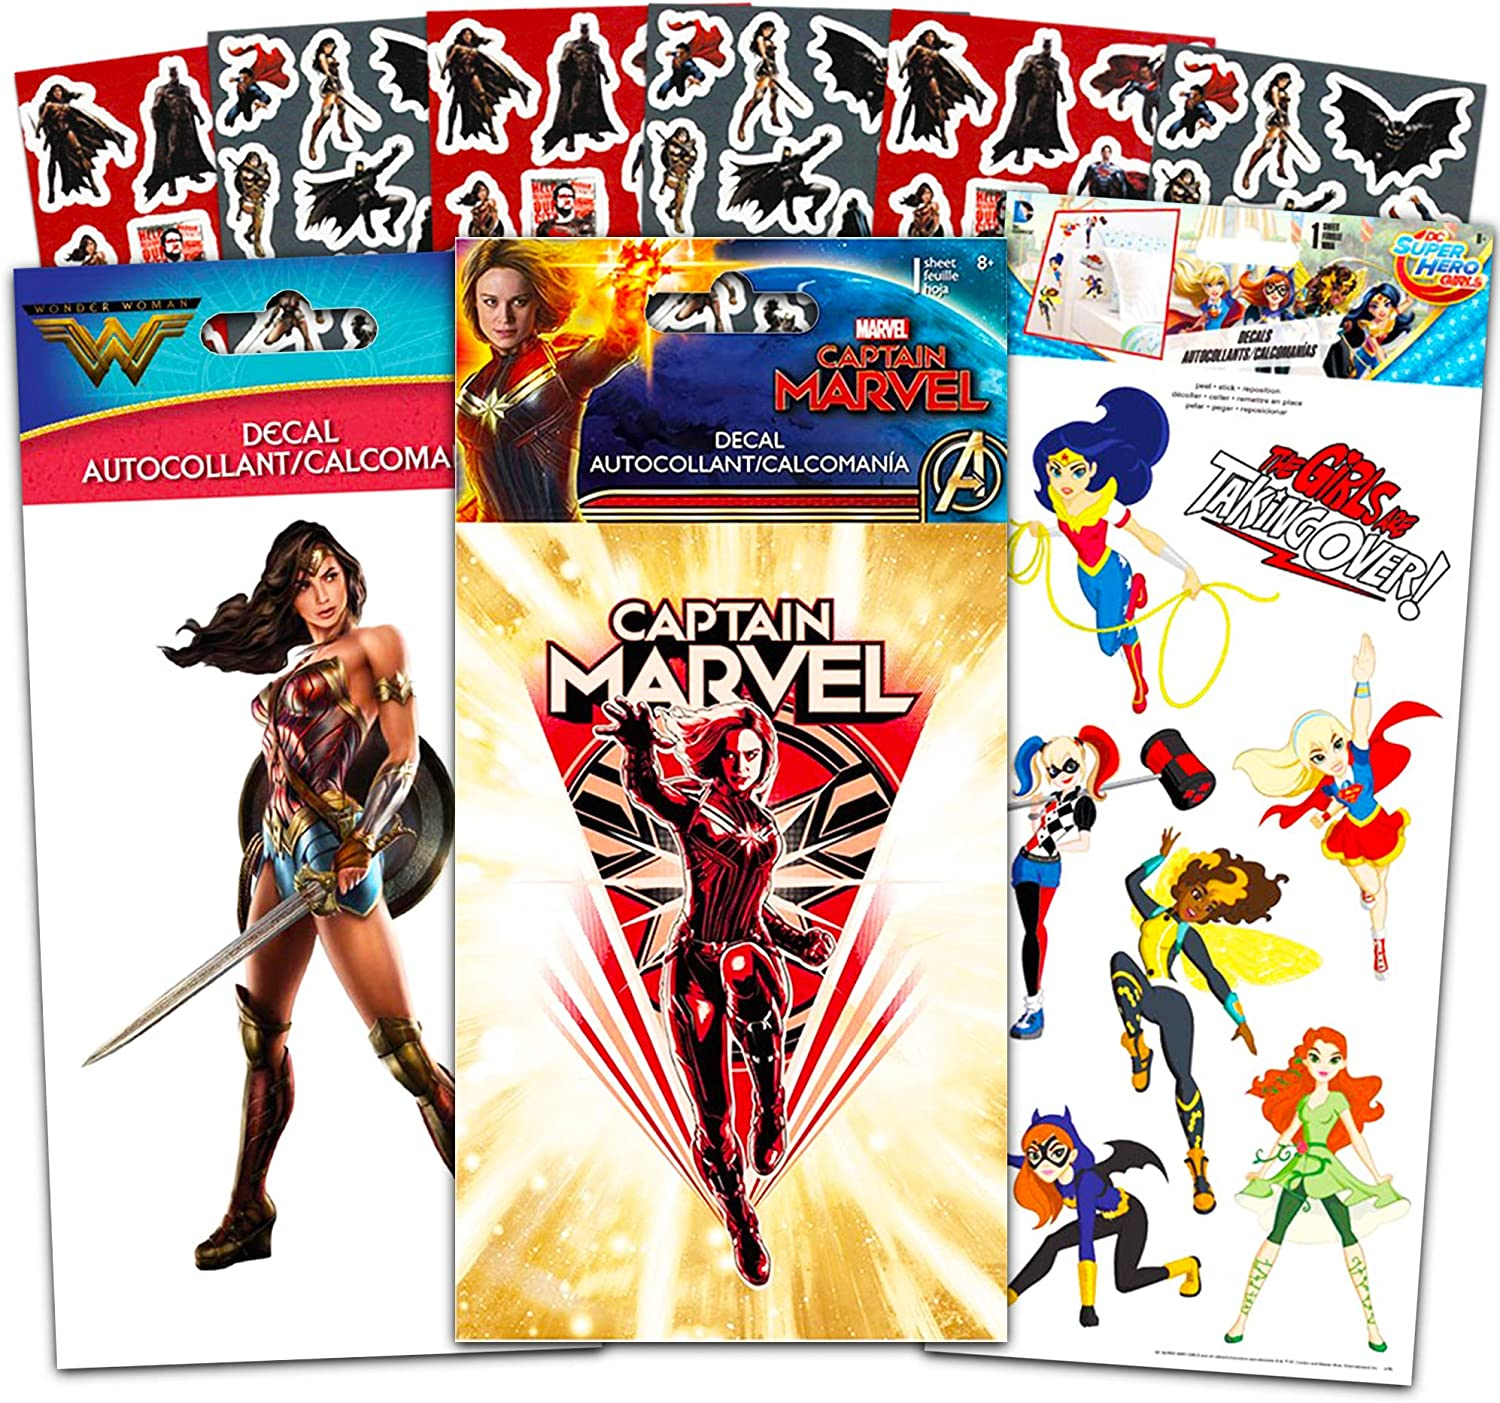 Superhero Sticker Set Superhero Bedroom Decor for Boys Girls -- 3 Pc Sticker Pack Captain Marvel, Harley Quinn and Wonder Woman Decal Superhero Stickers for Car, Laptop, Walls, Room Decor